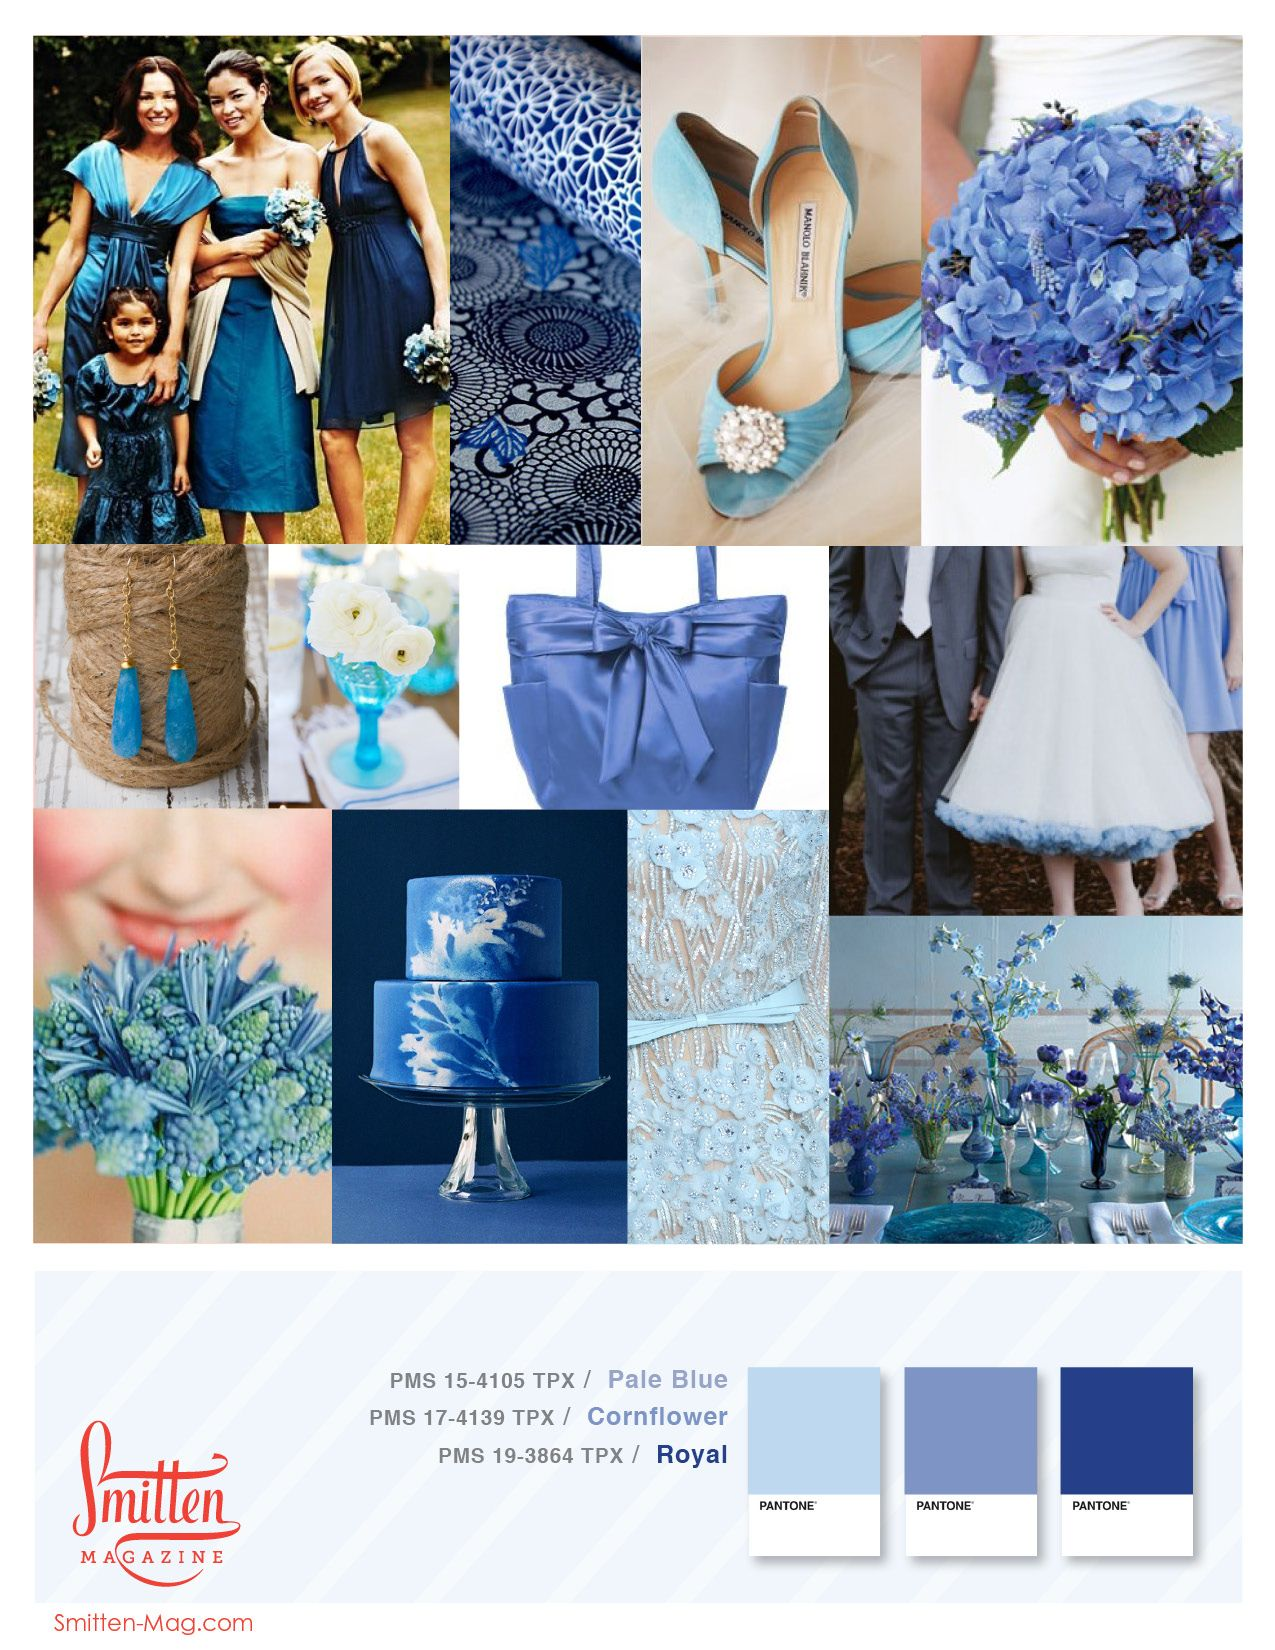 Flowergirls In A Complimentary Lighter Or Darker Shade Of Blue